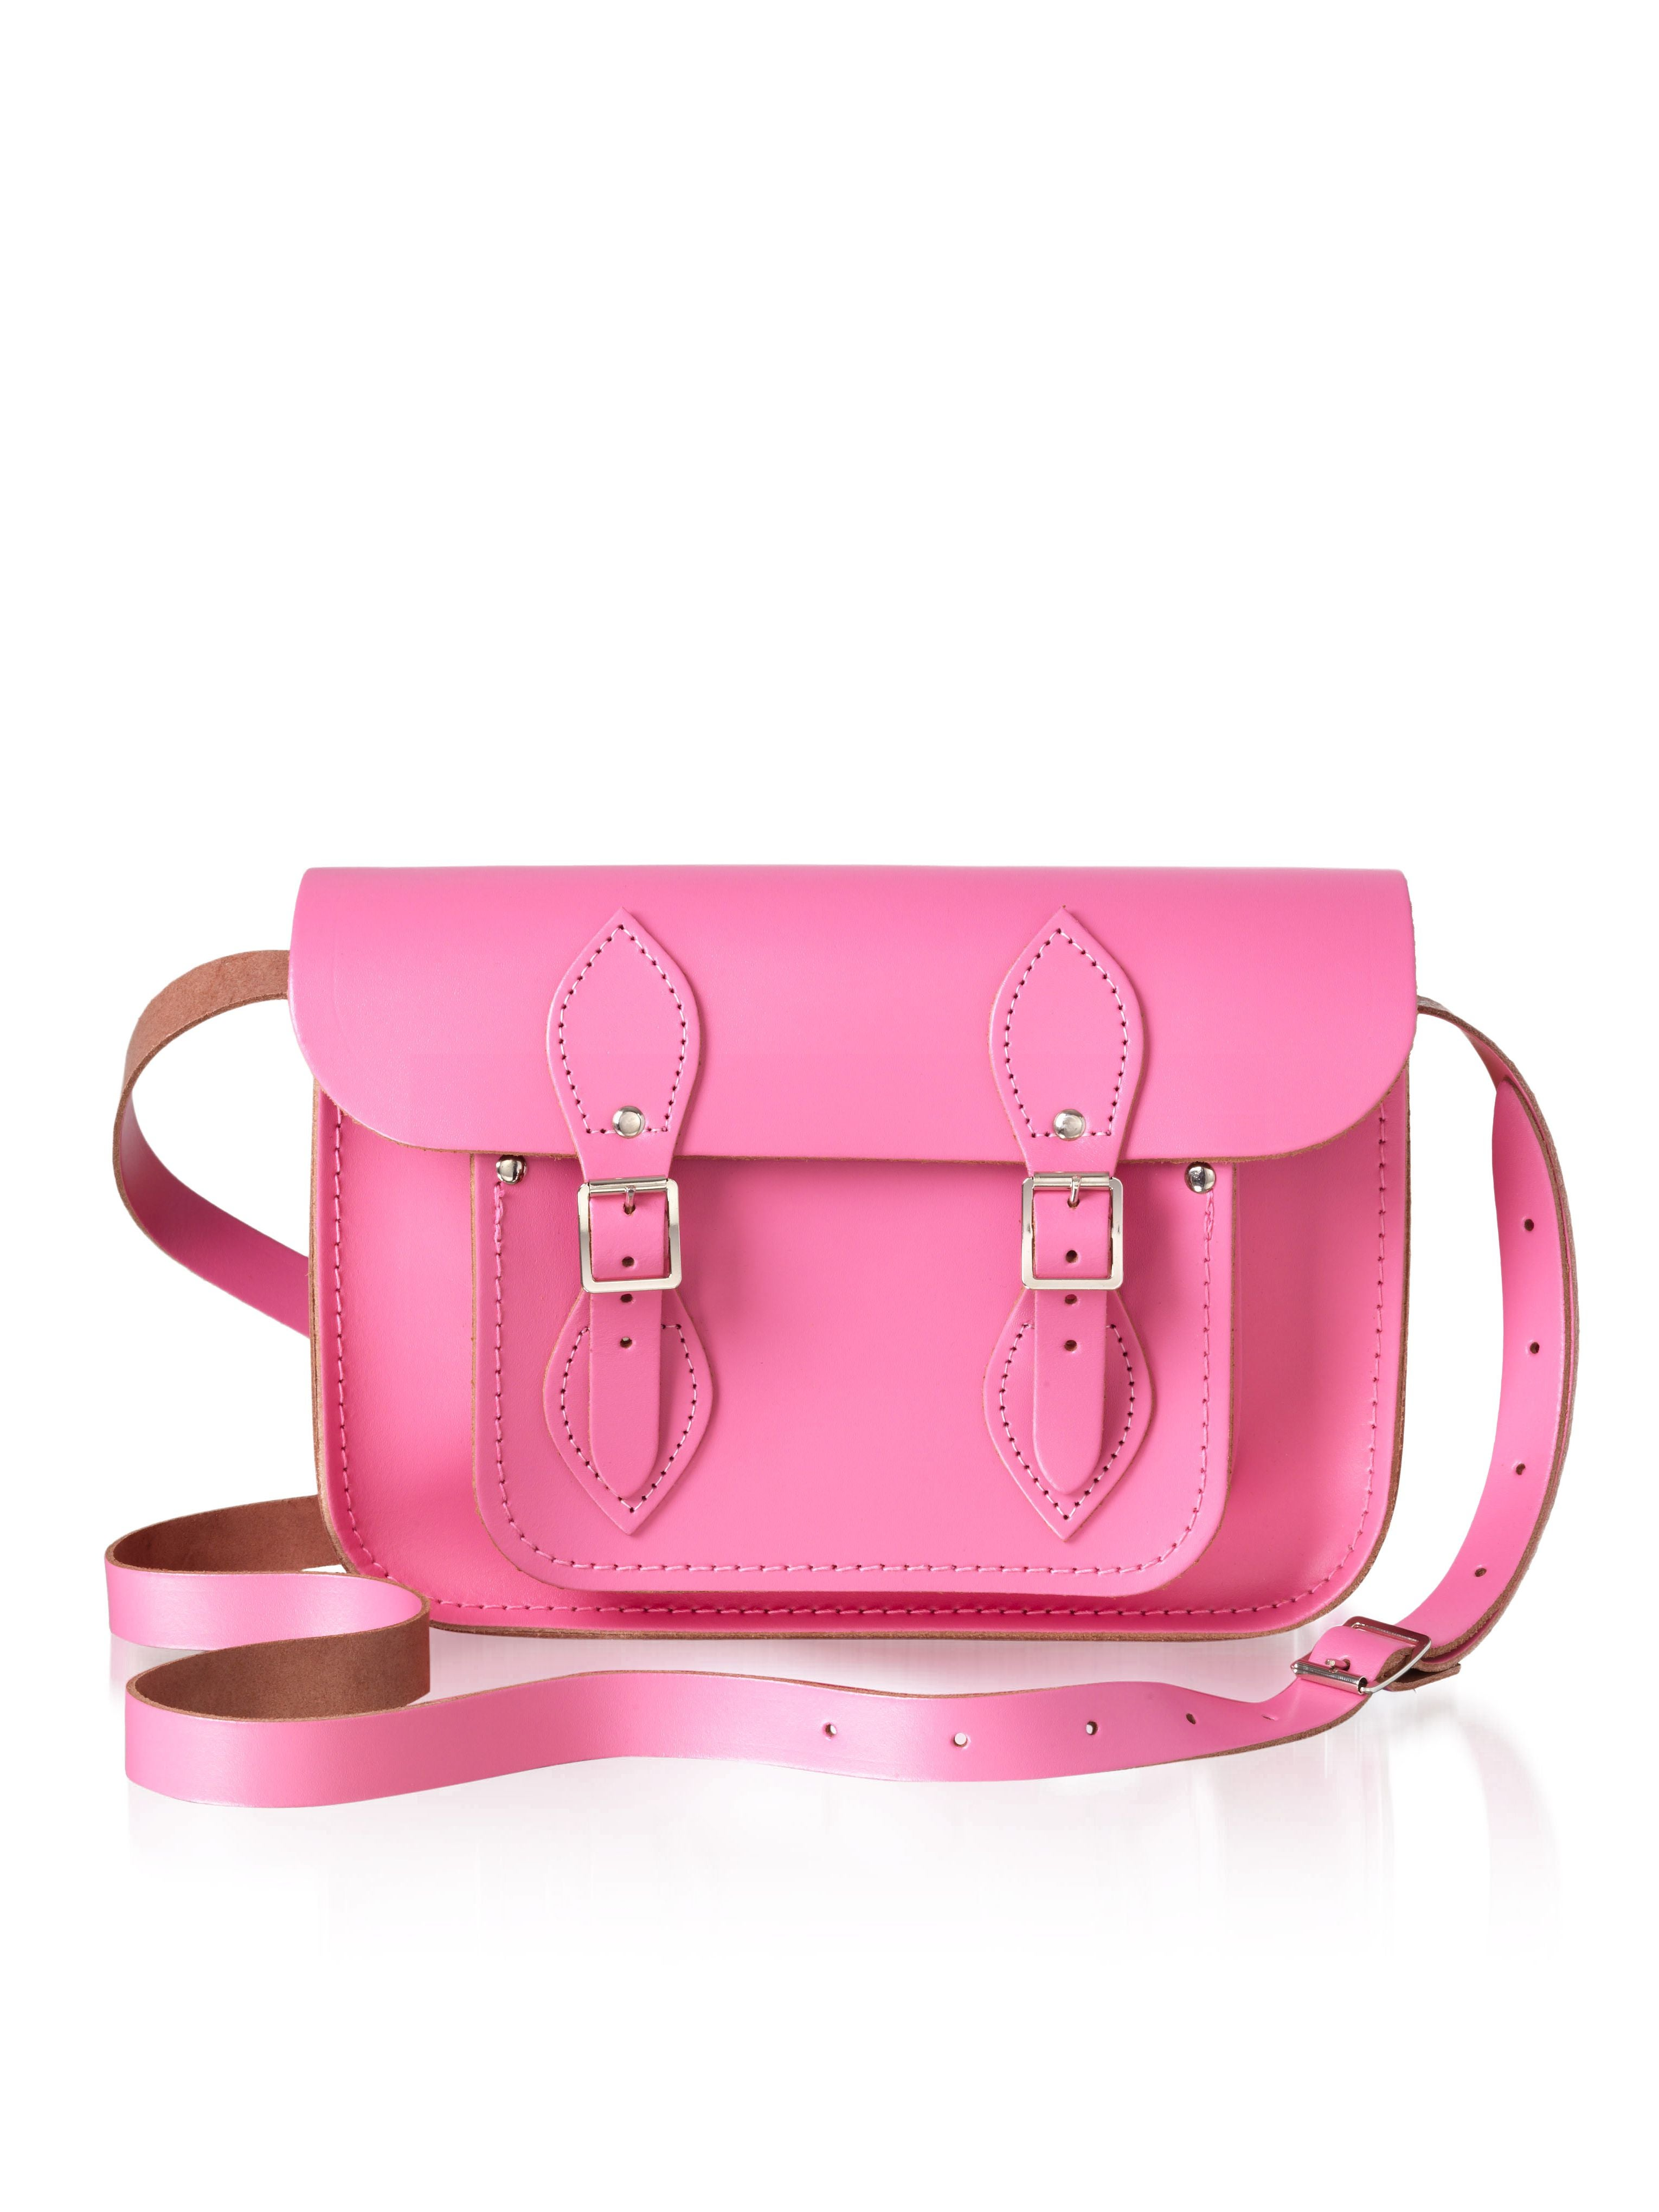 45cc2394251d The Cambridge Satchel company has been selling its leather ...